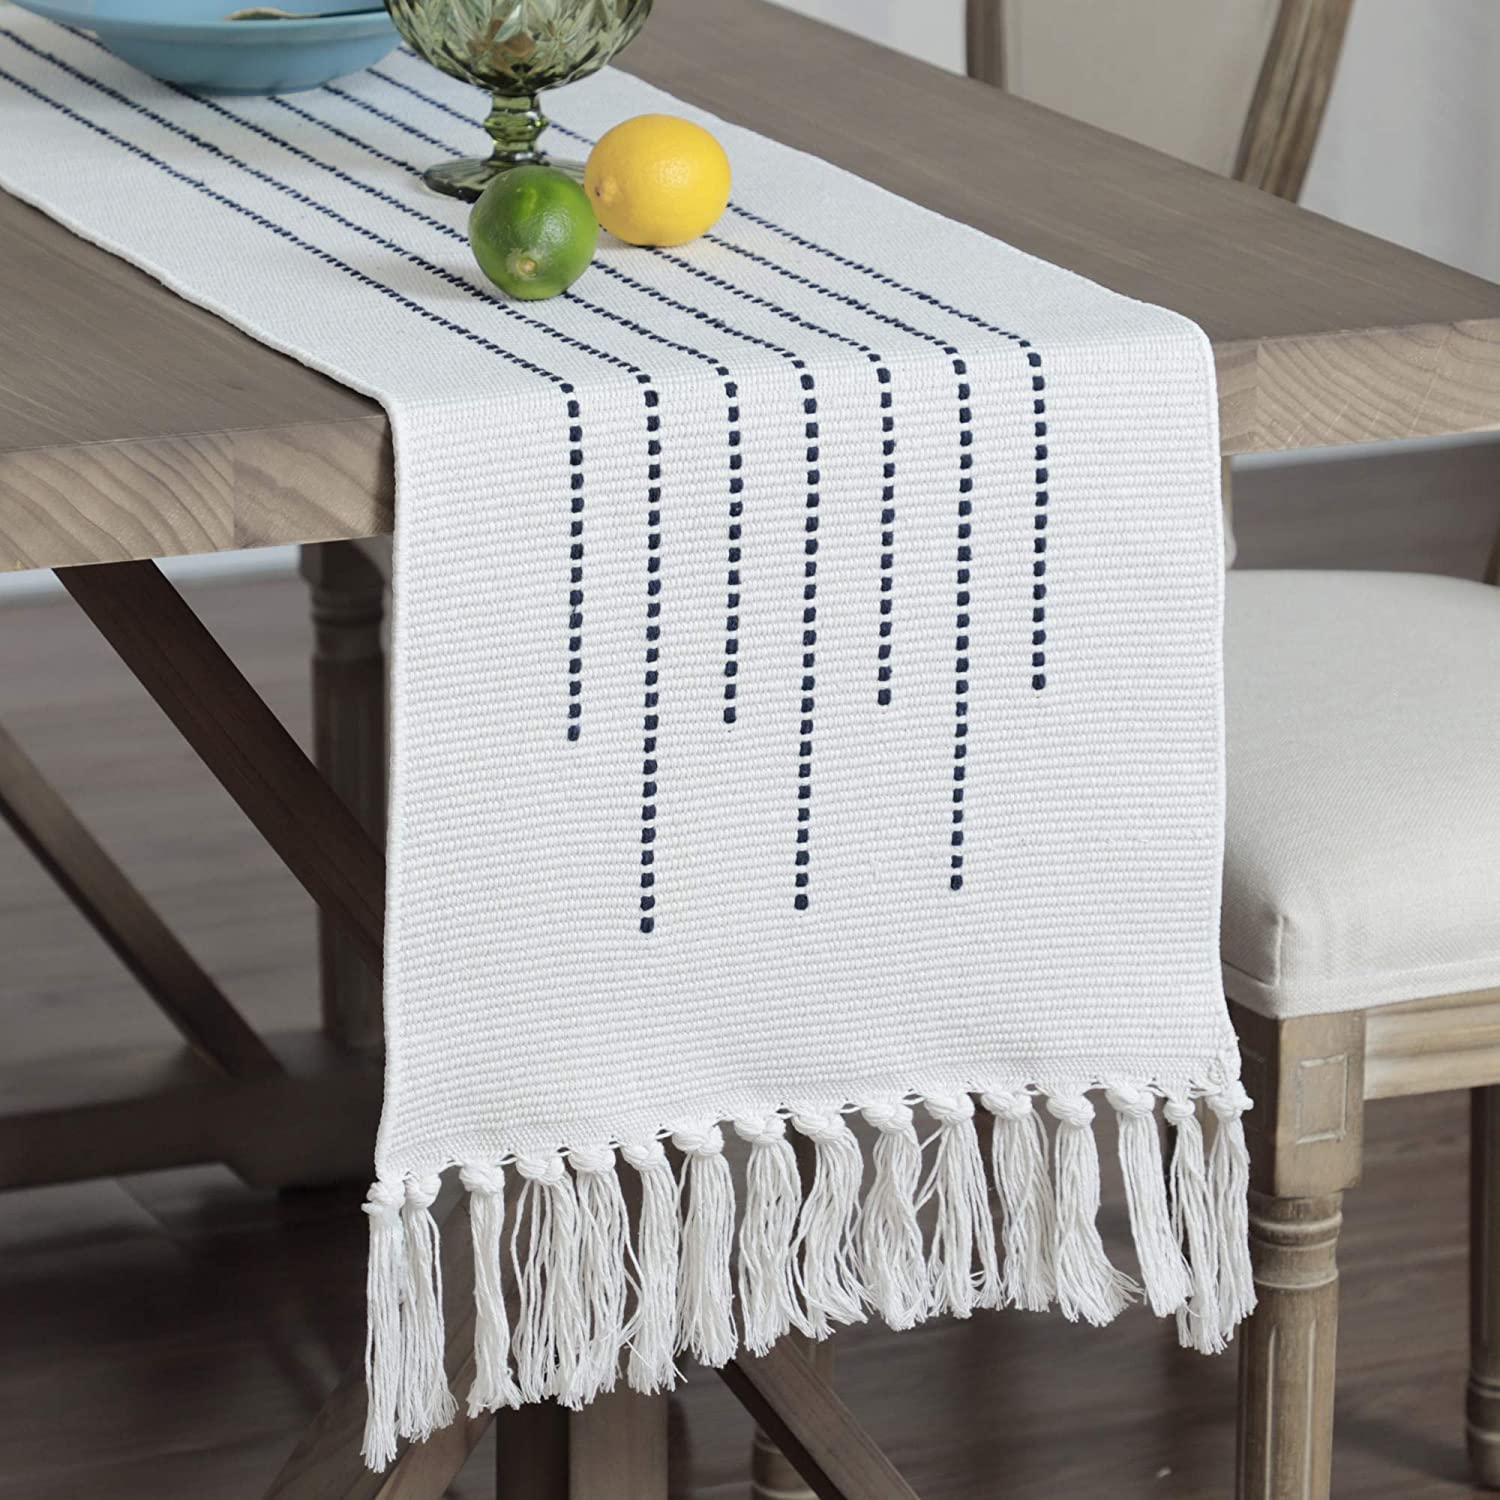 Braided Table Runner with Tassel Rectangle Coffee Table Dresser Decor Navy Blue Stripe 59 Inch